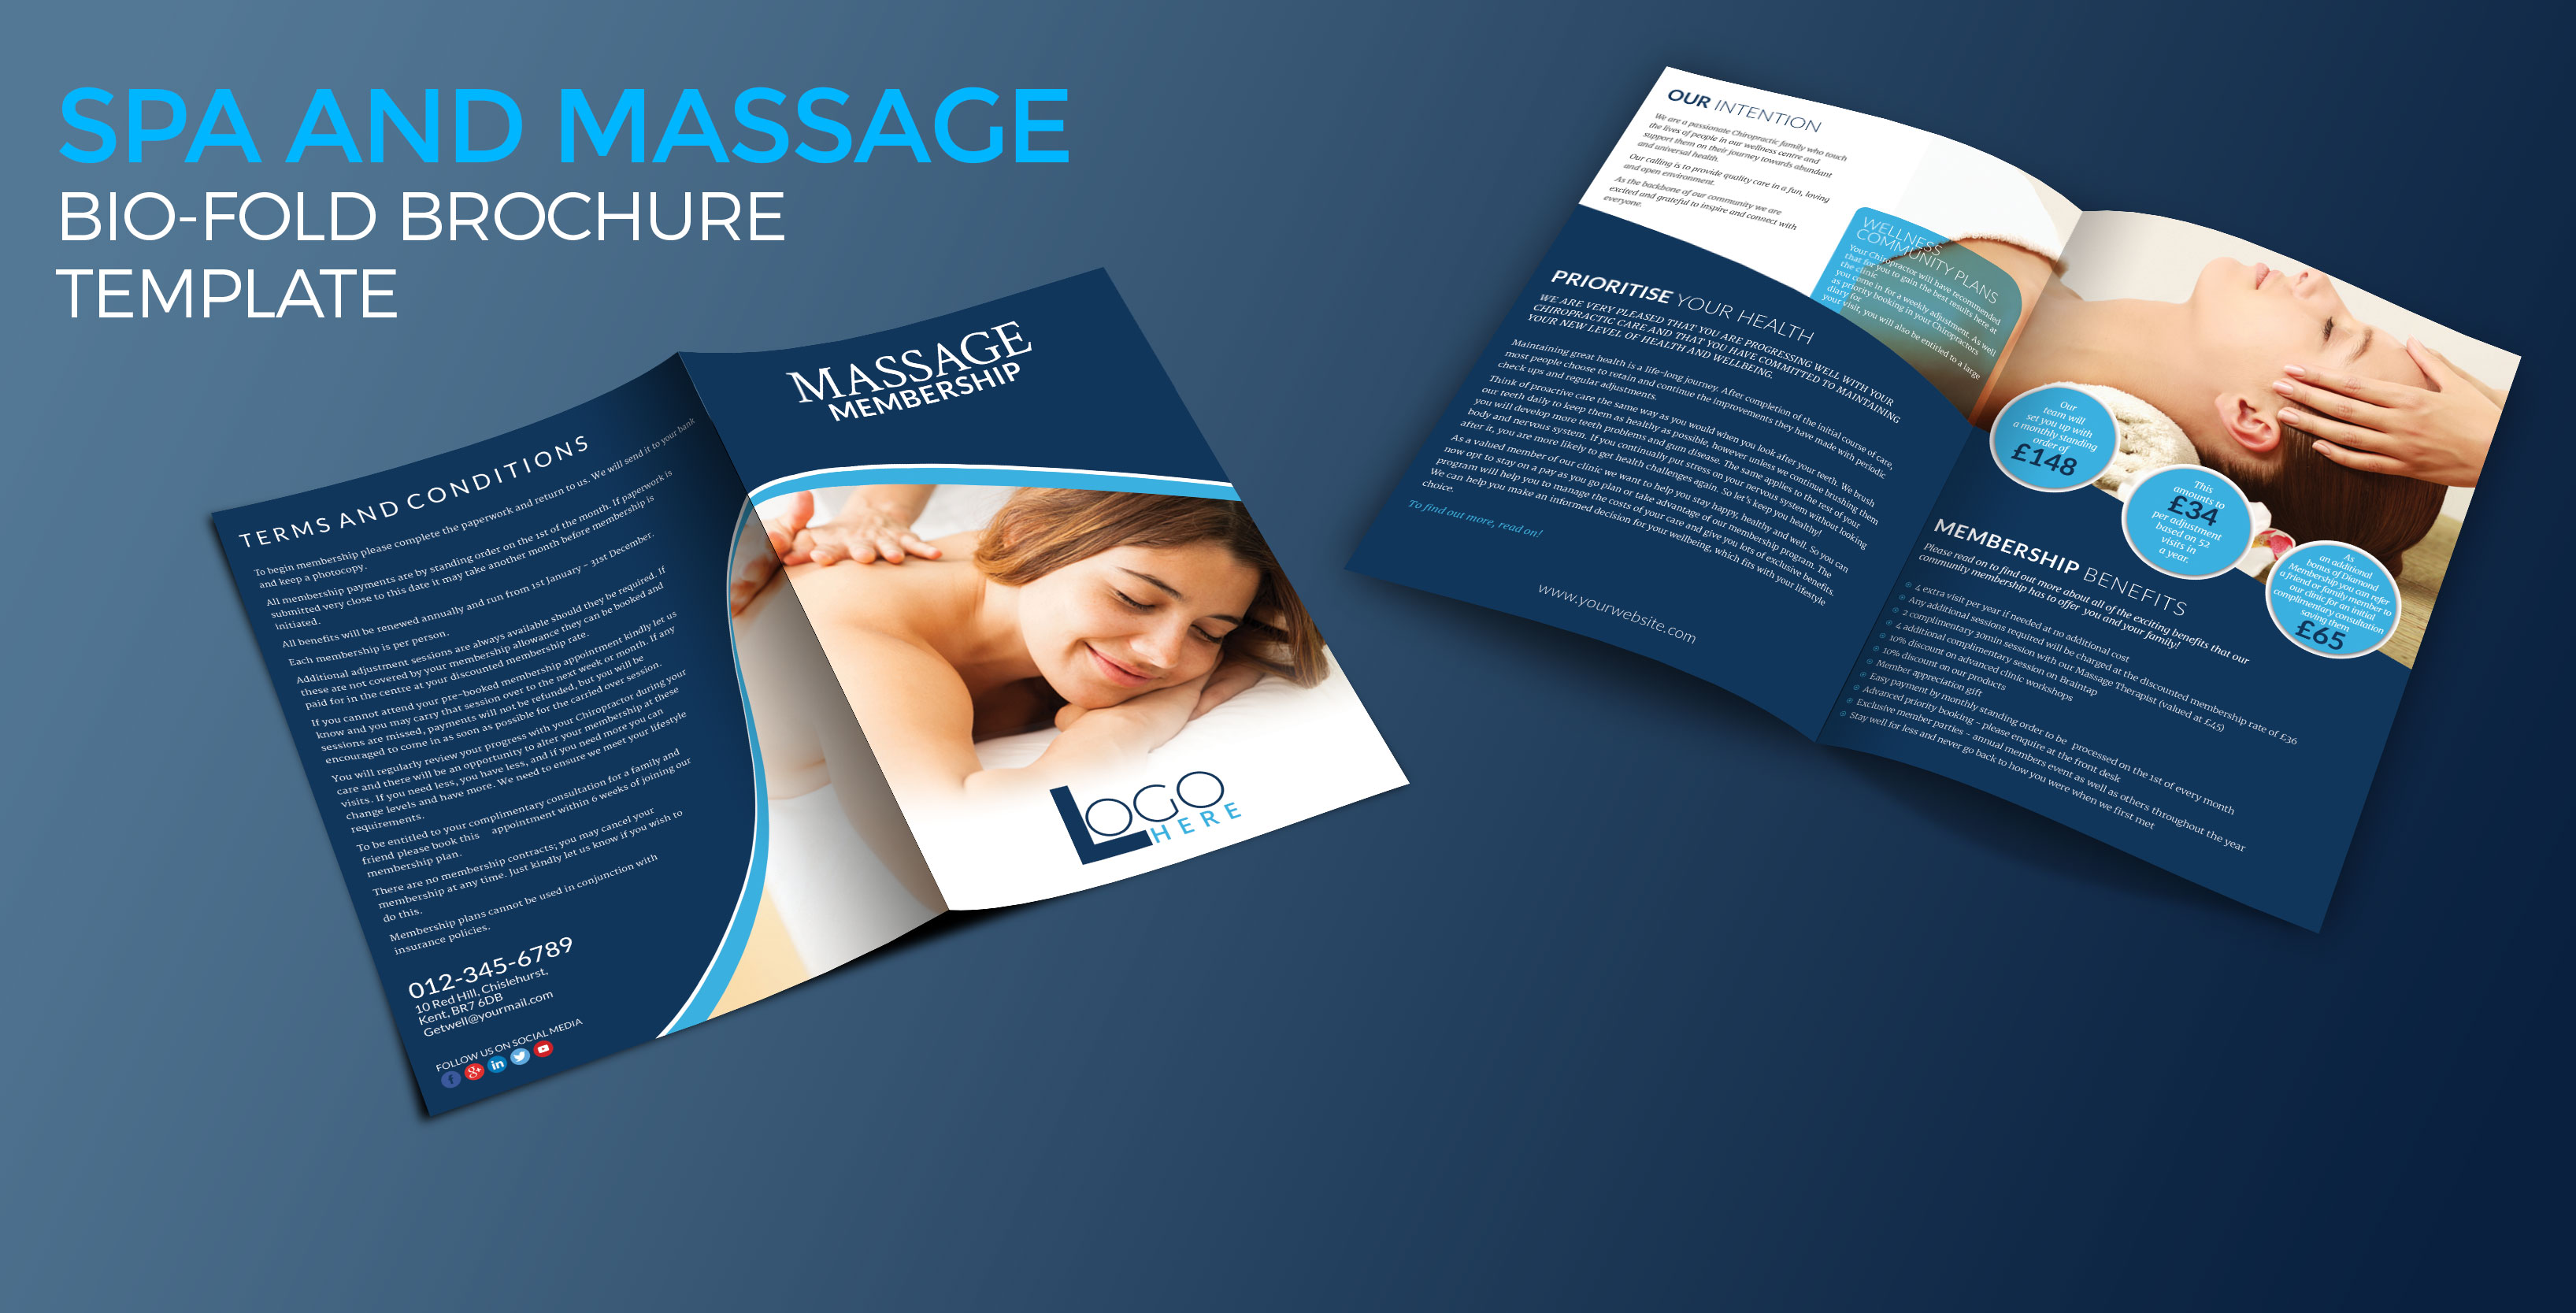 Spa and Massage Bio-fold Brochure Template - Graphic Reserve